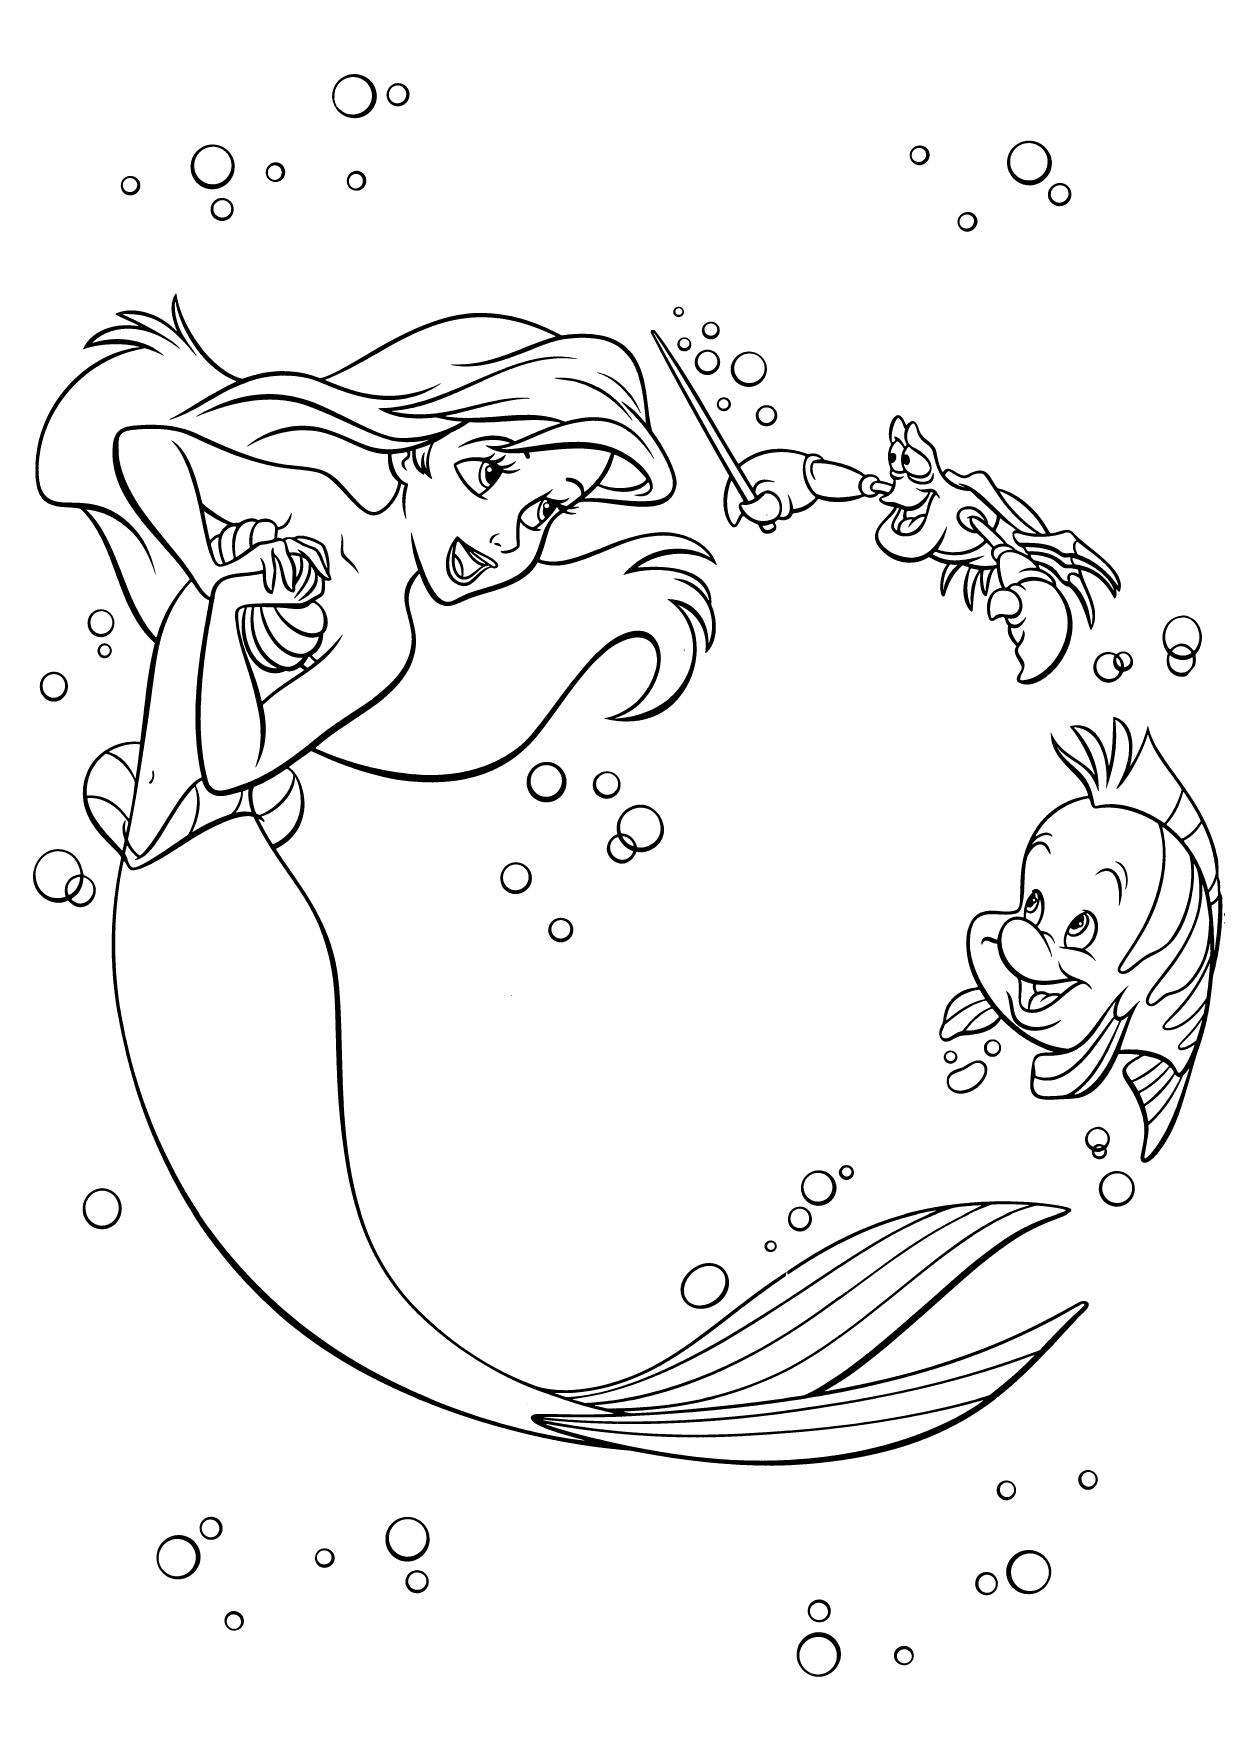 disney coloring book pdf - Free Download Colouring Book